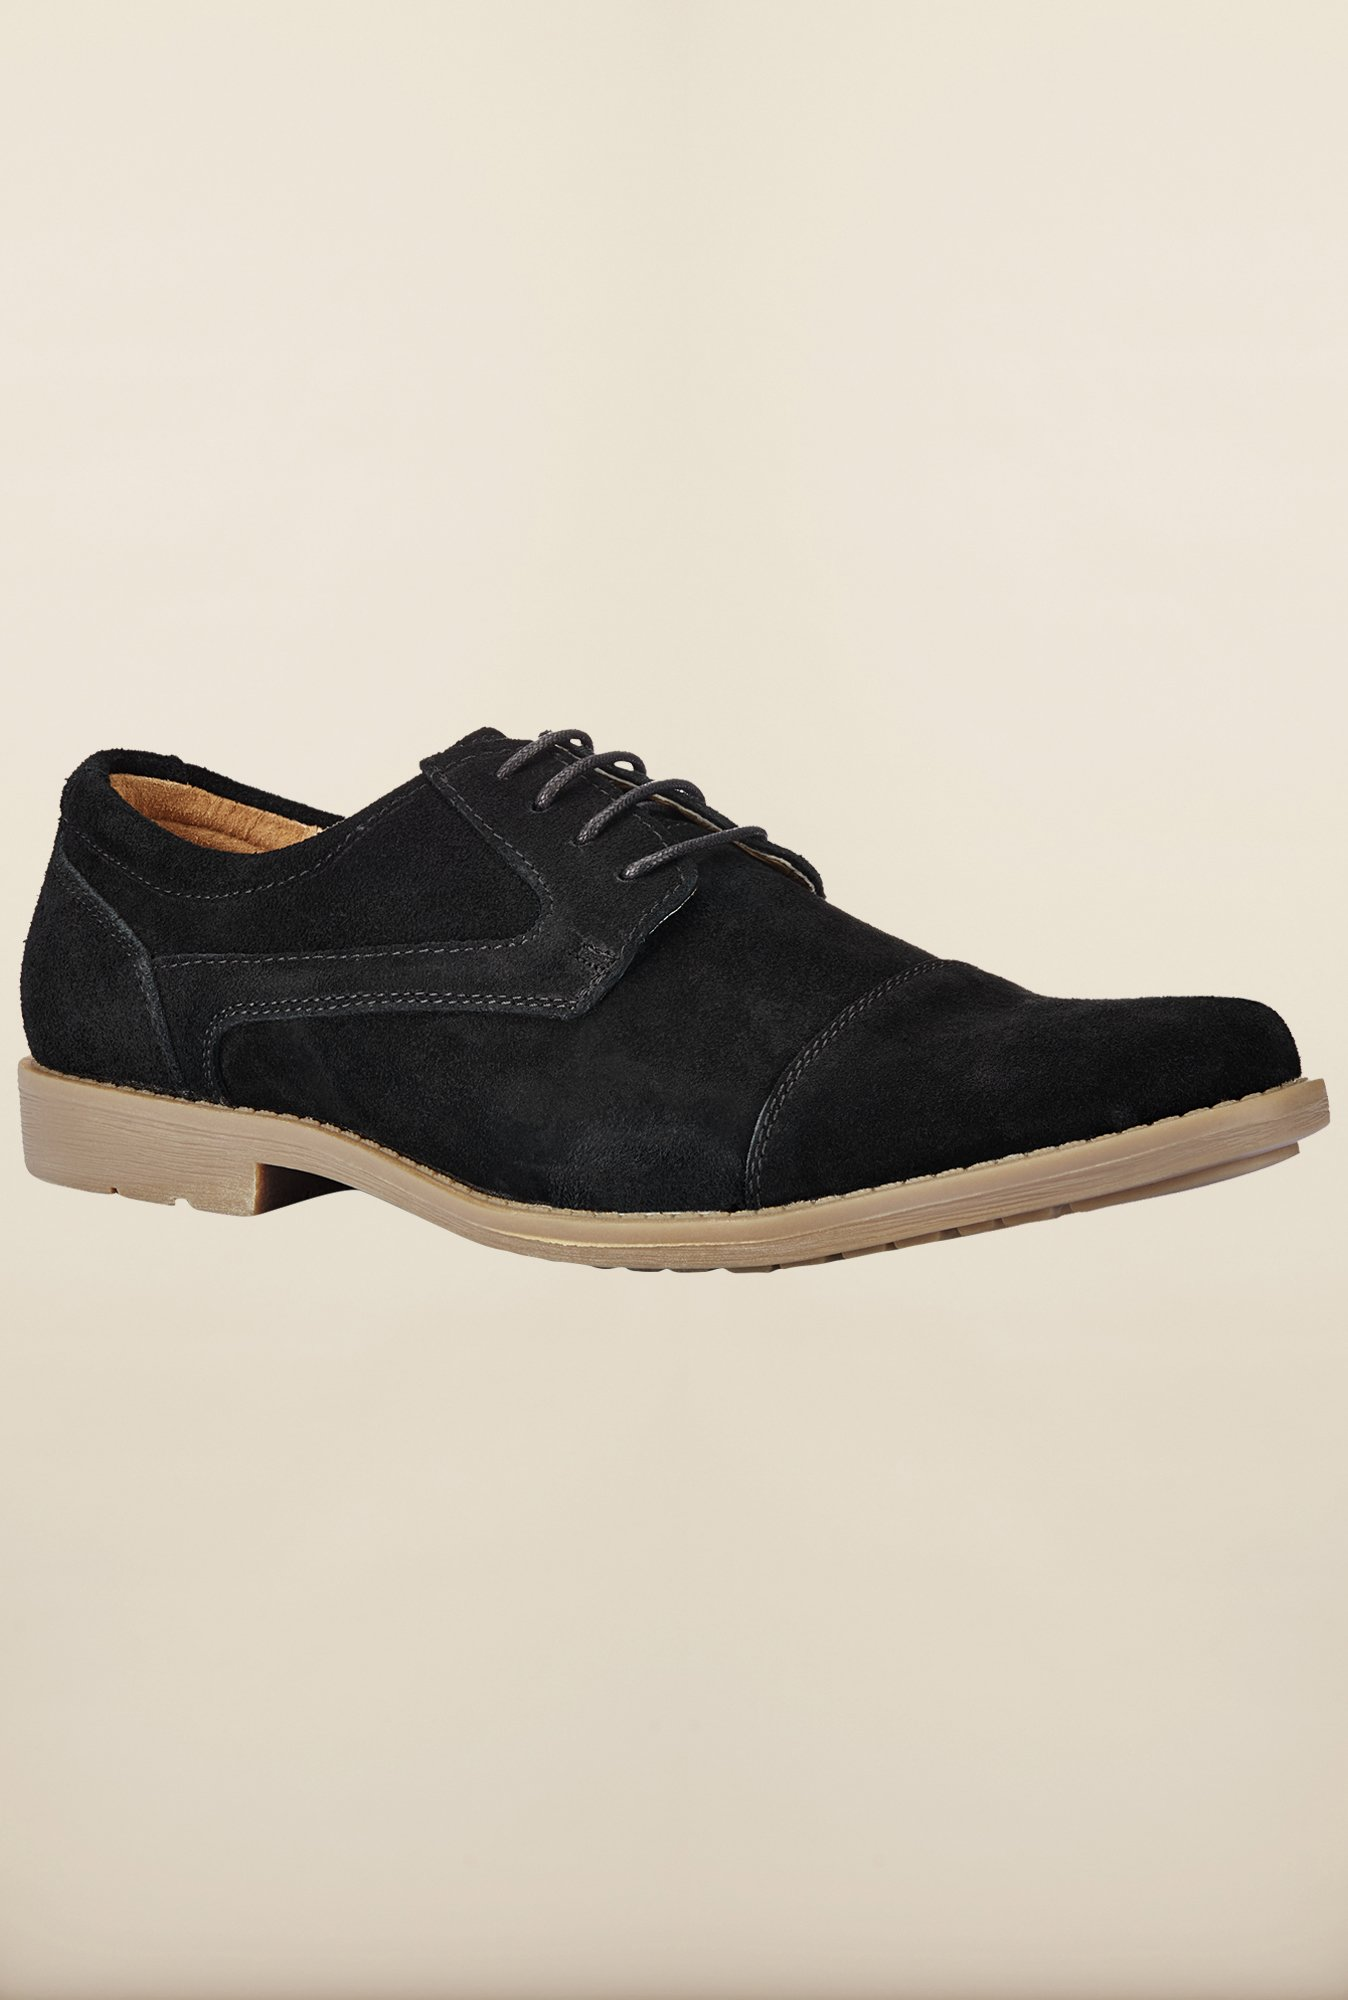 Tresmode Jcas Black Shoes